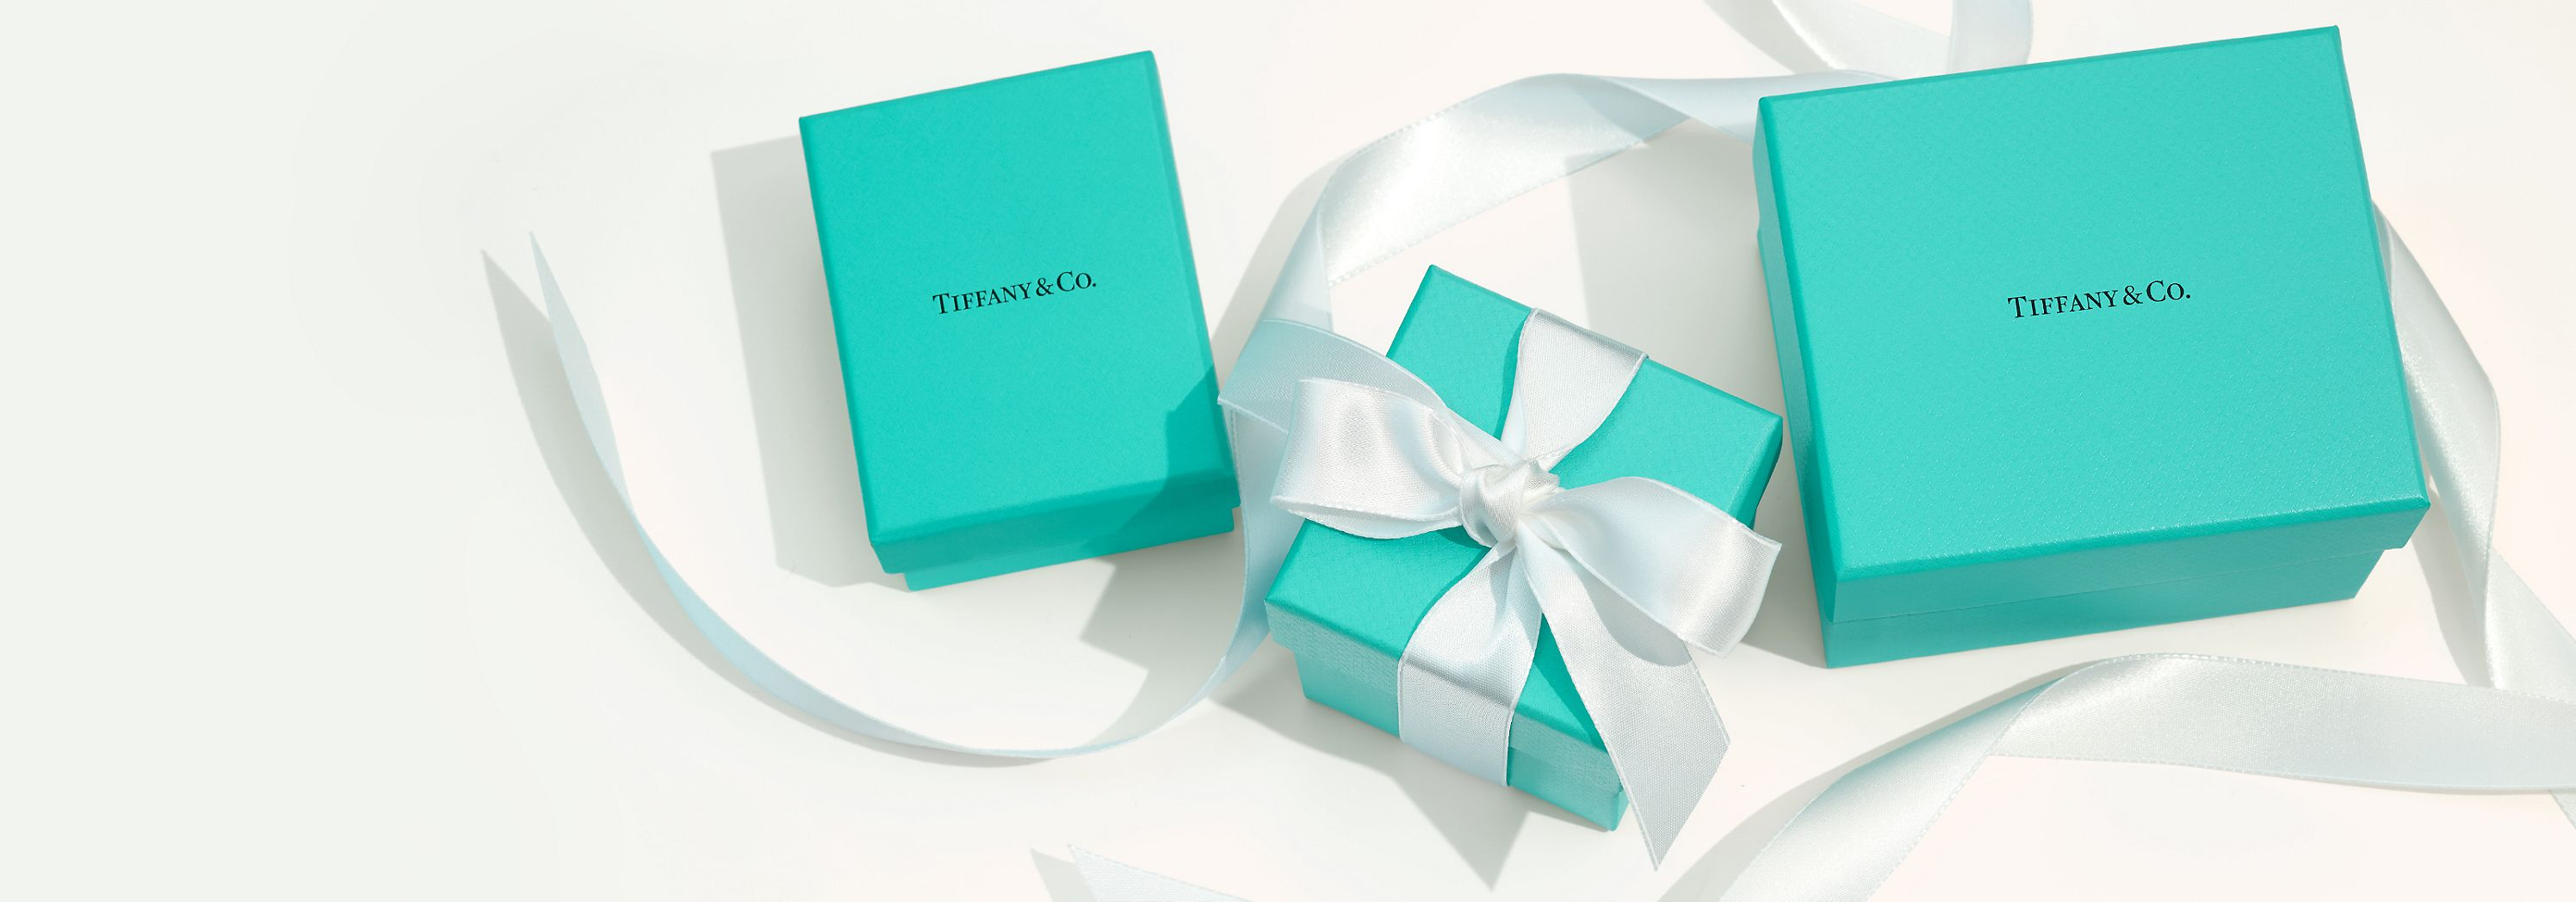 Tiffany Co Official Luxury Jewelry